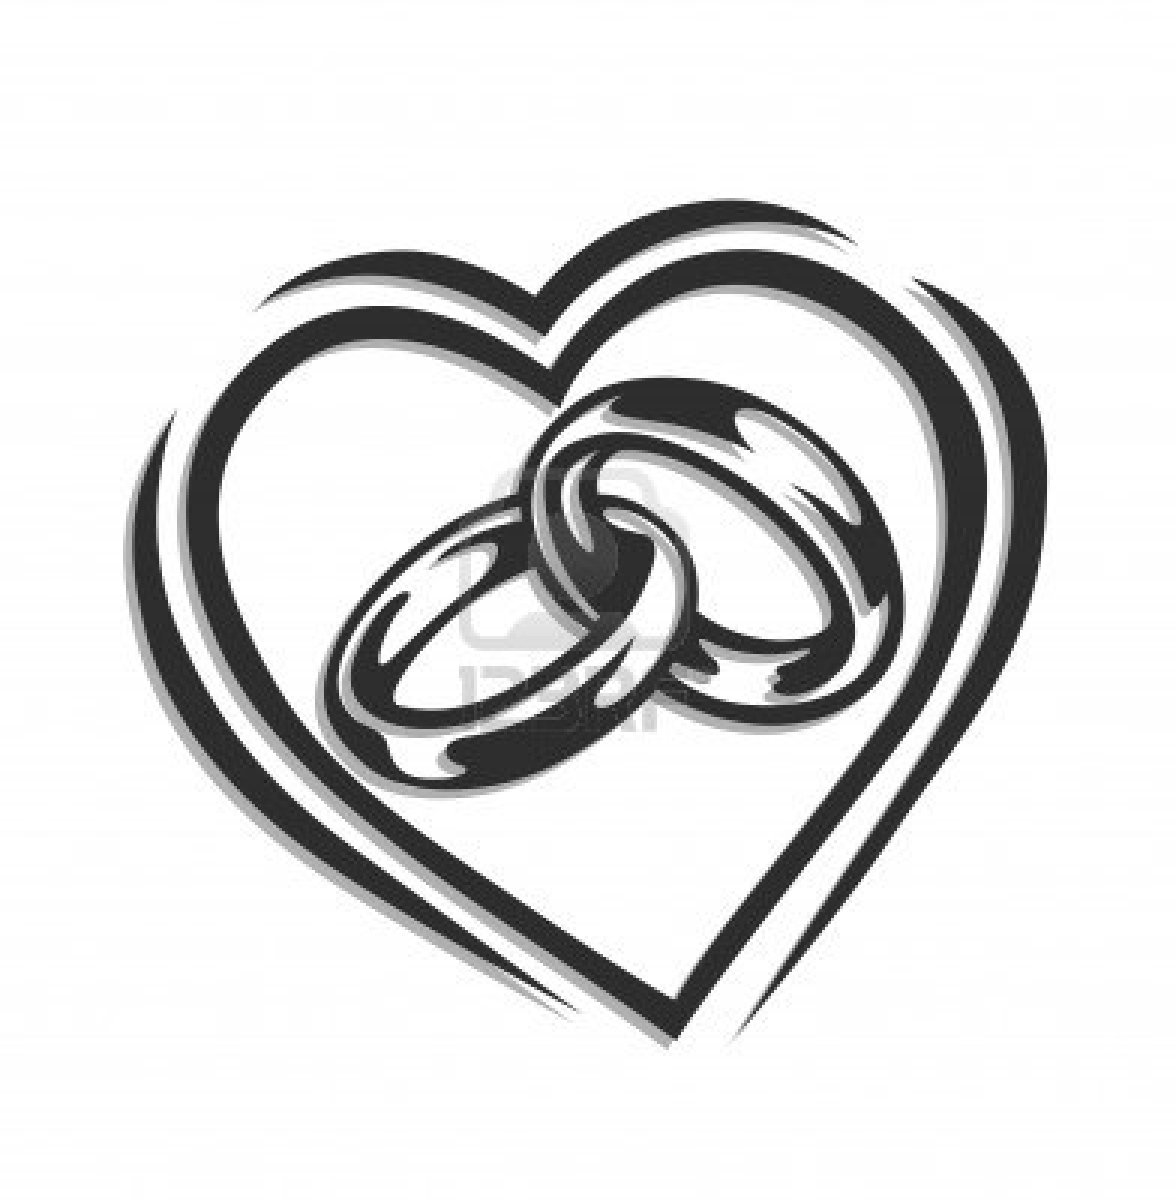 Linked Wedding Rings Clipart-linked wedding rings clipart-3